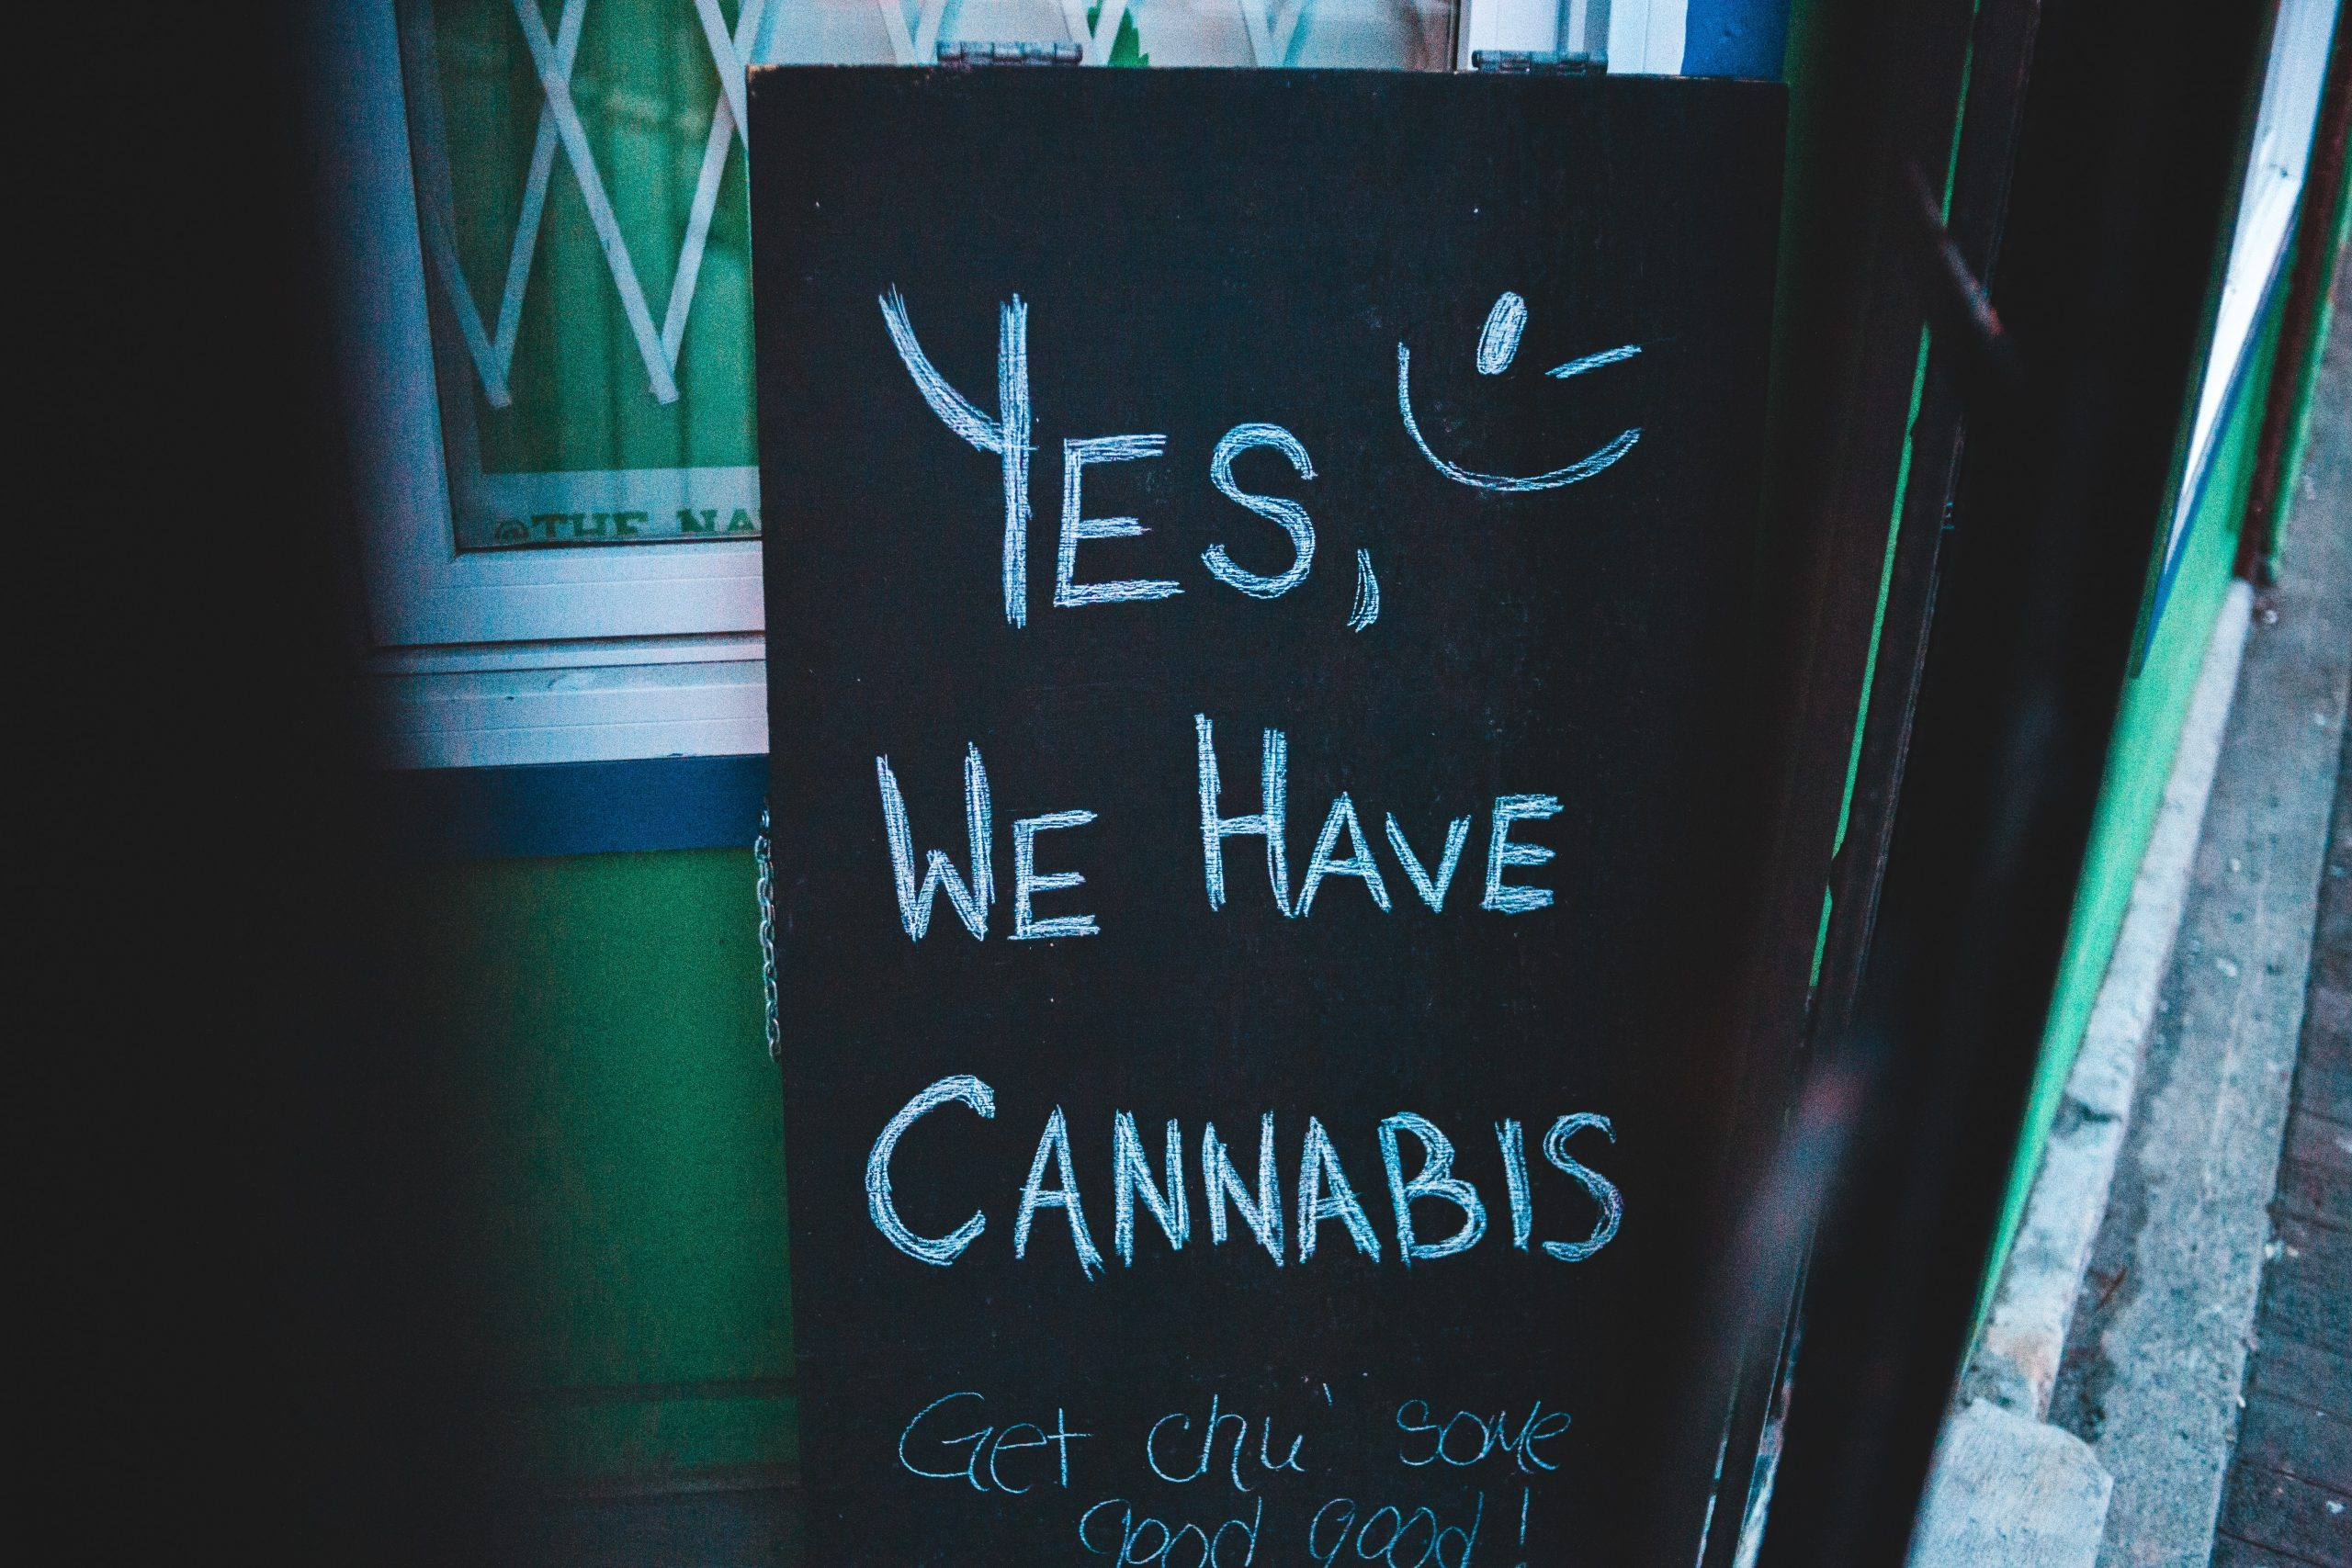 traditional marketing dispensary sign